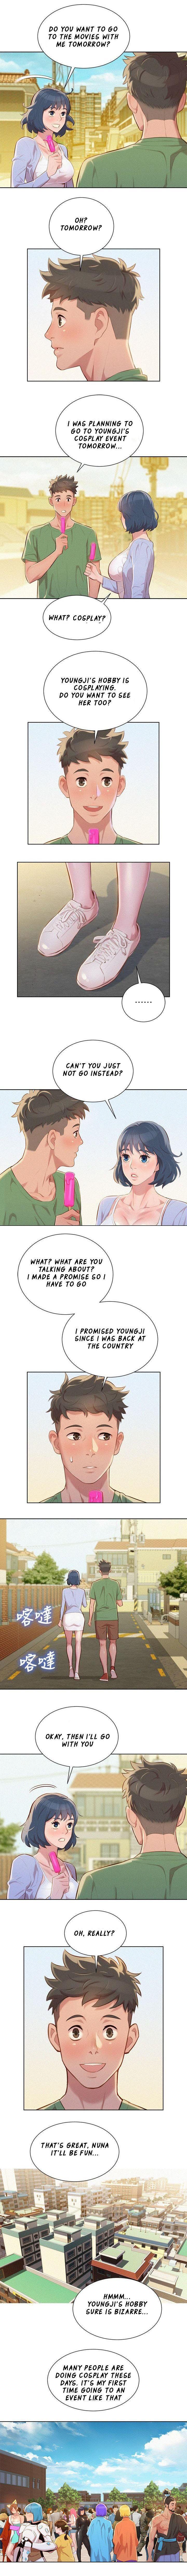 What do you Take me For? Ch.70/? 382